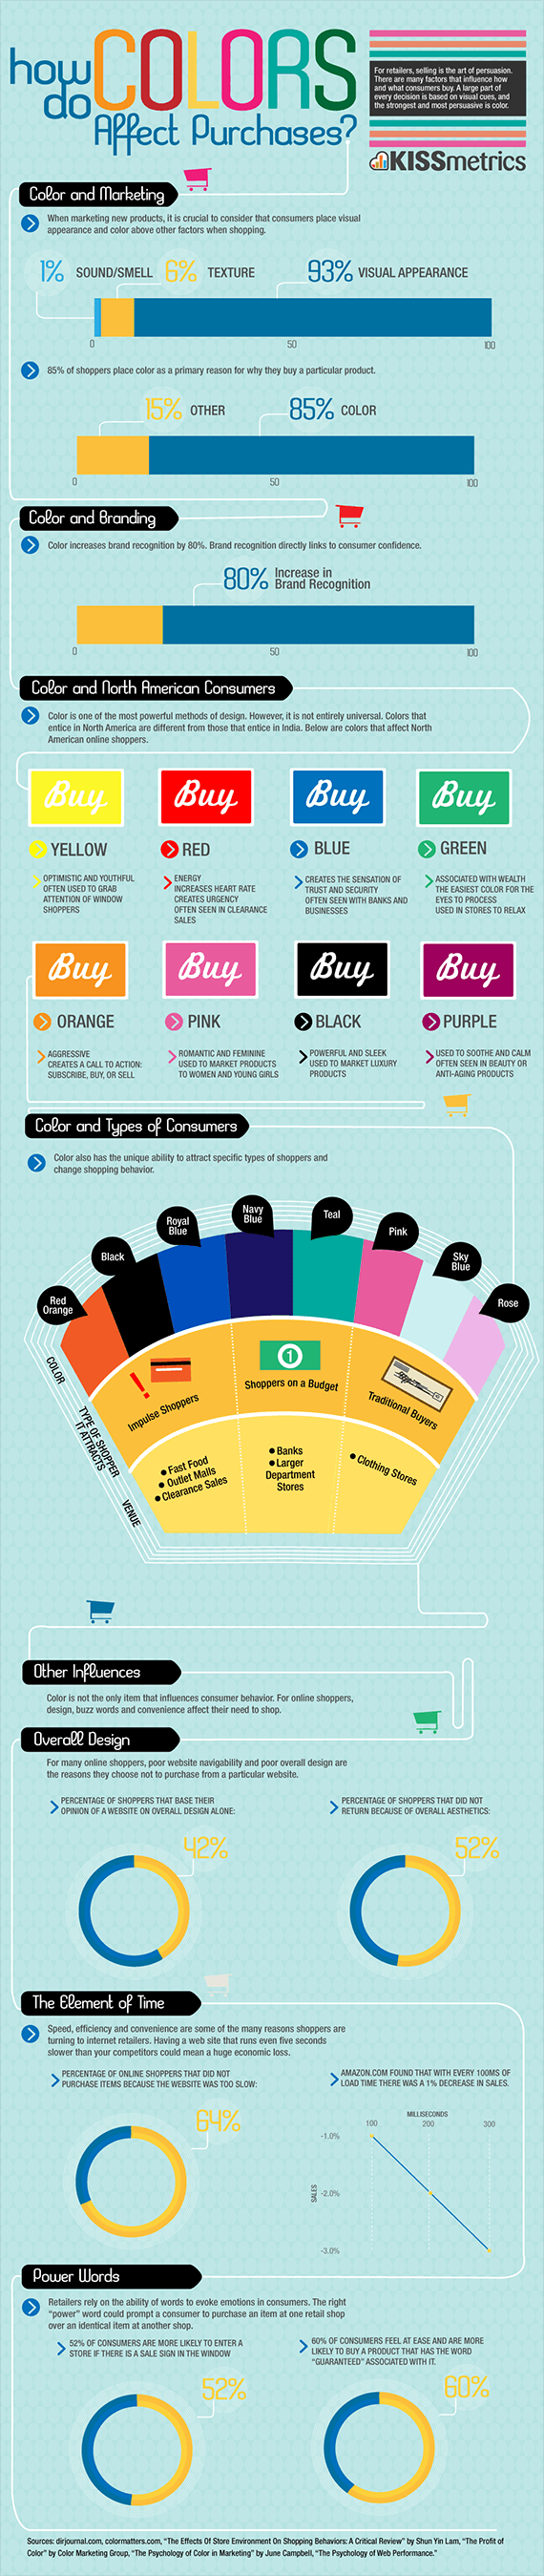 How Colors Impact What We Purchase [Infographic]